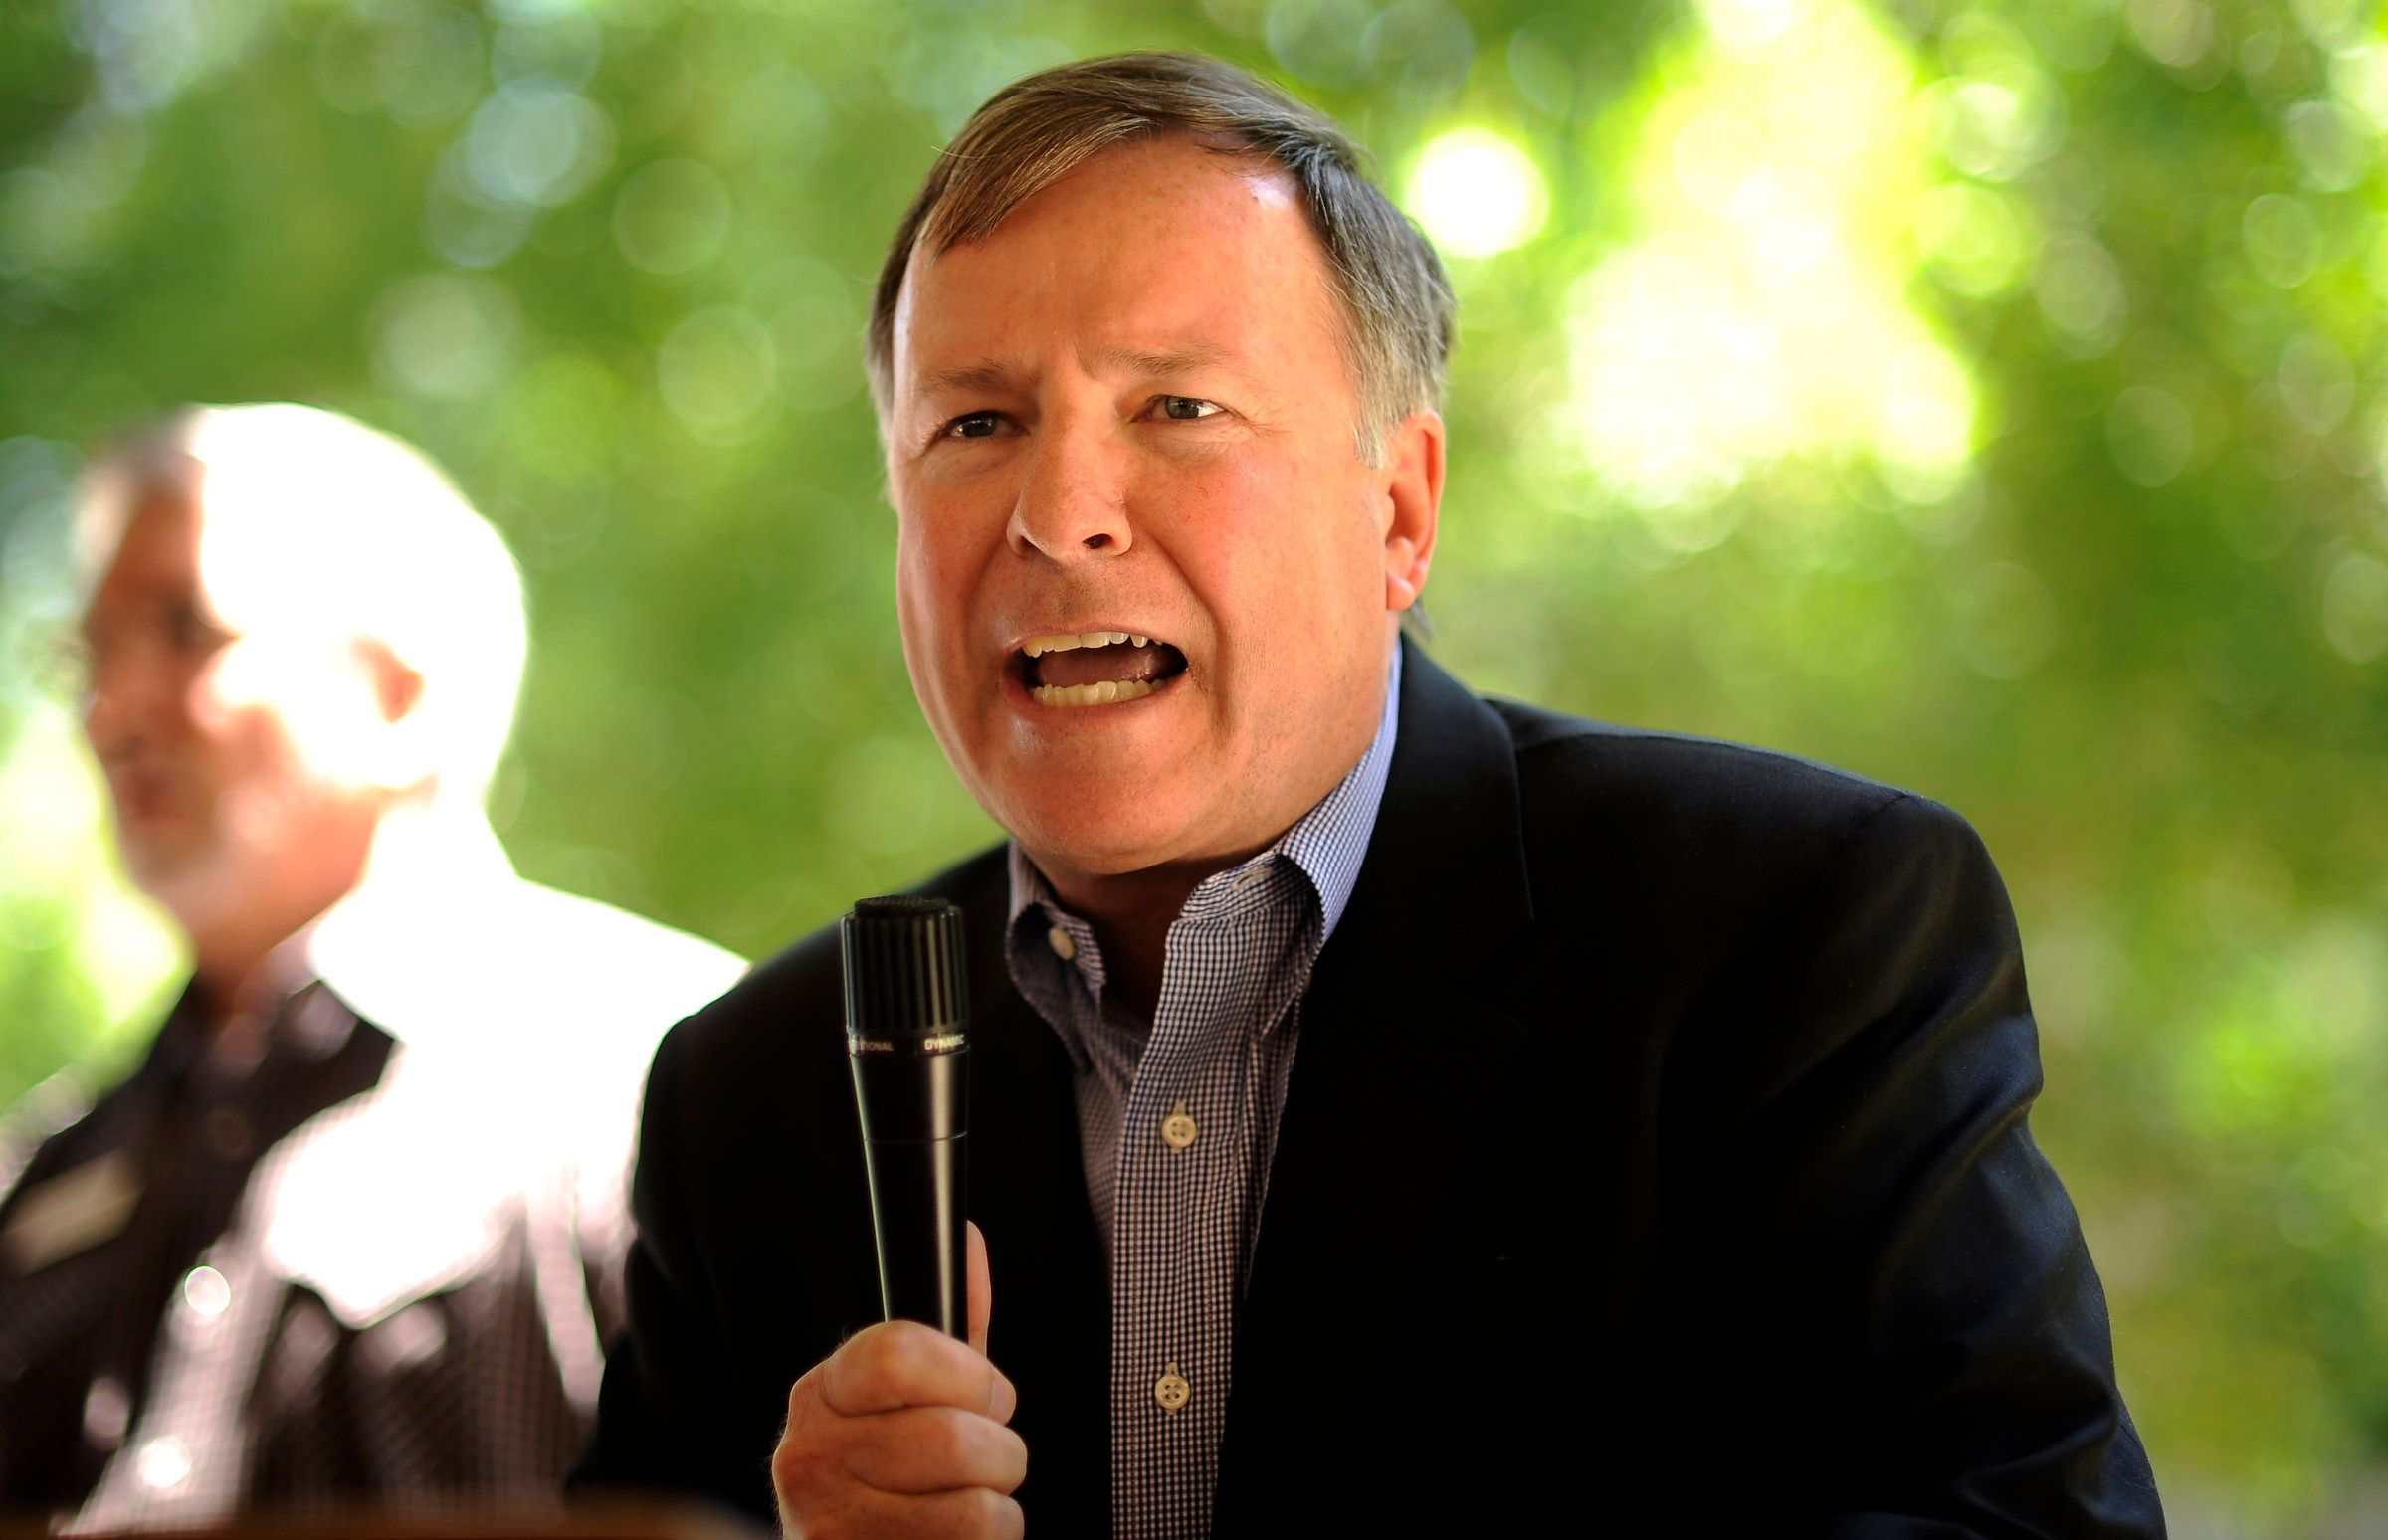 Rep. Doug Lamborn of Colorado's 5th congressional district made appearance at the El Paso County GOP Women's picnic in Antlers Park, Colorado Springs, Colo., on Tuesday, June 12. Hyoung Chang, The Denver Post  (Photo By Hyoung Chang/The Denver Post via Getty Images)